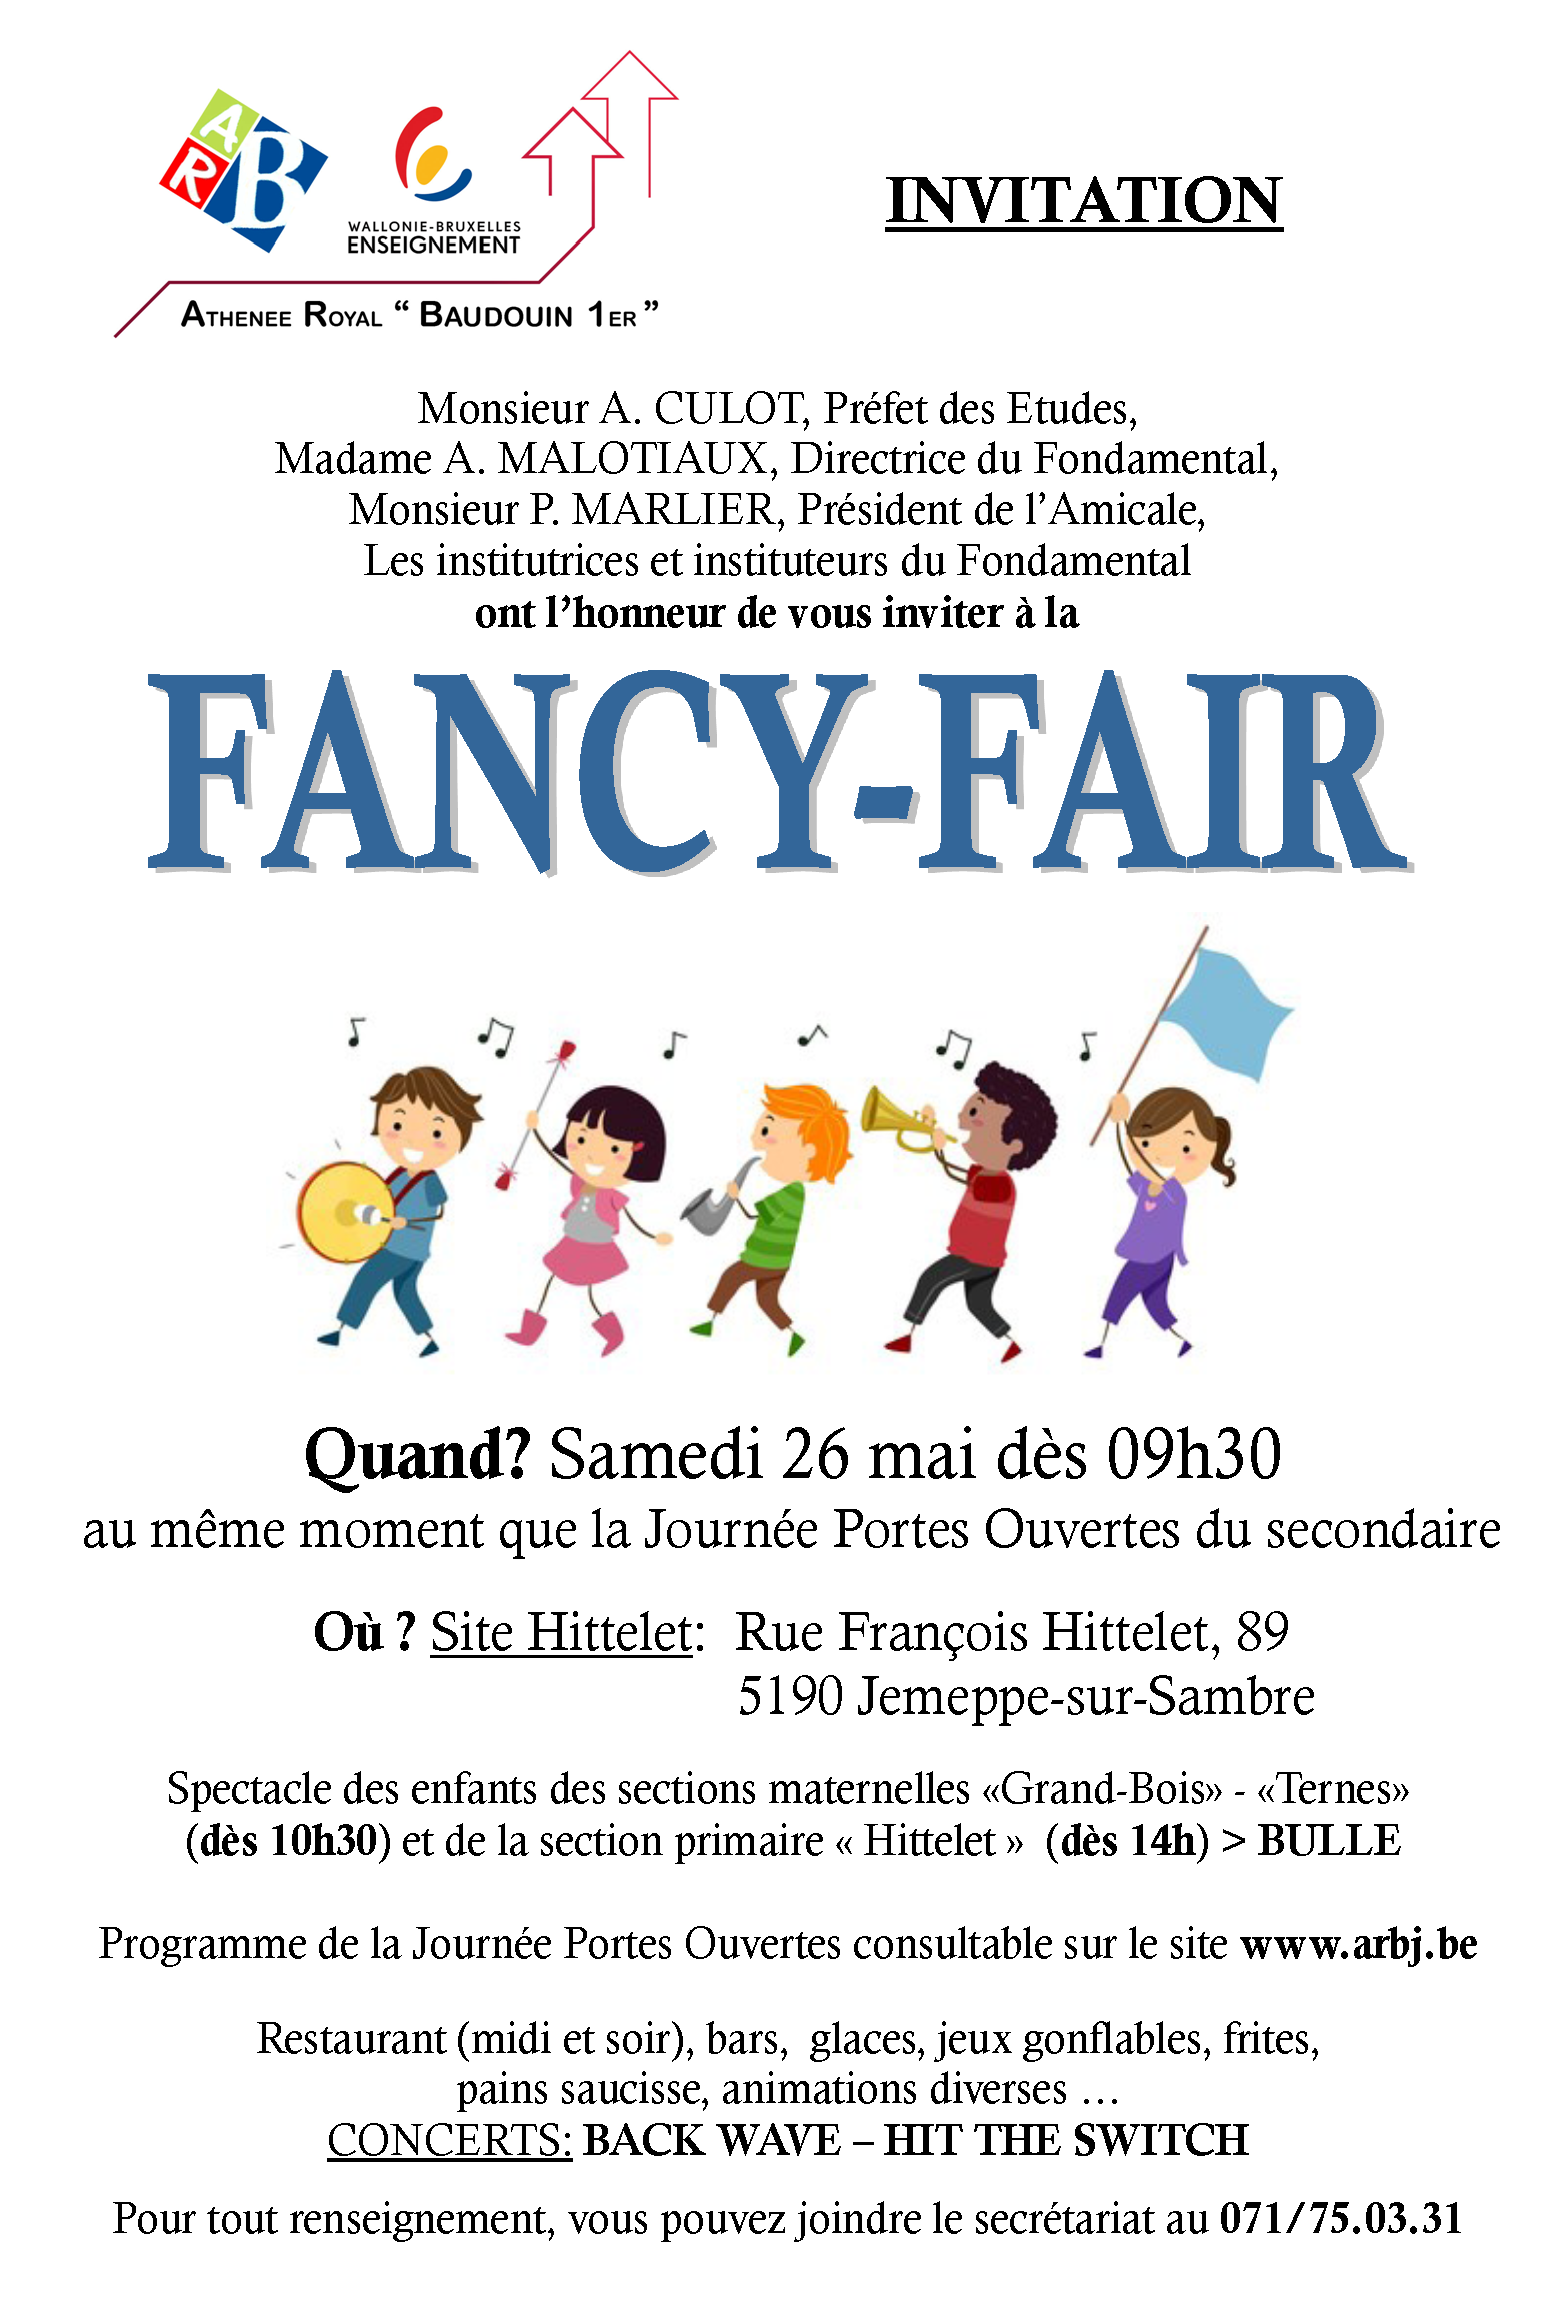 Fancy fair 2018-Invitation.png